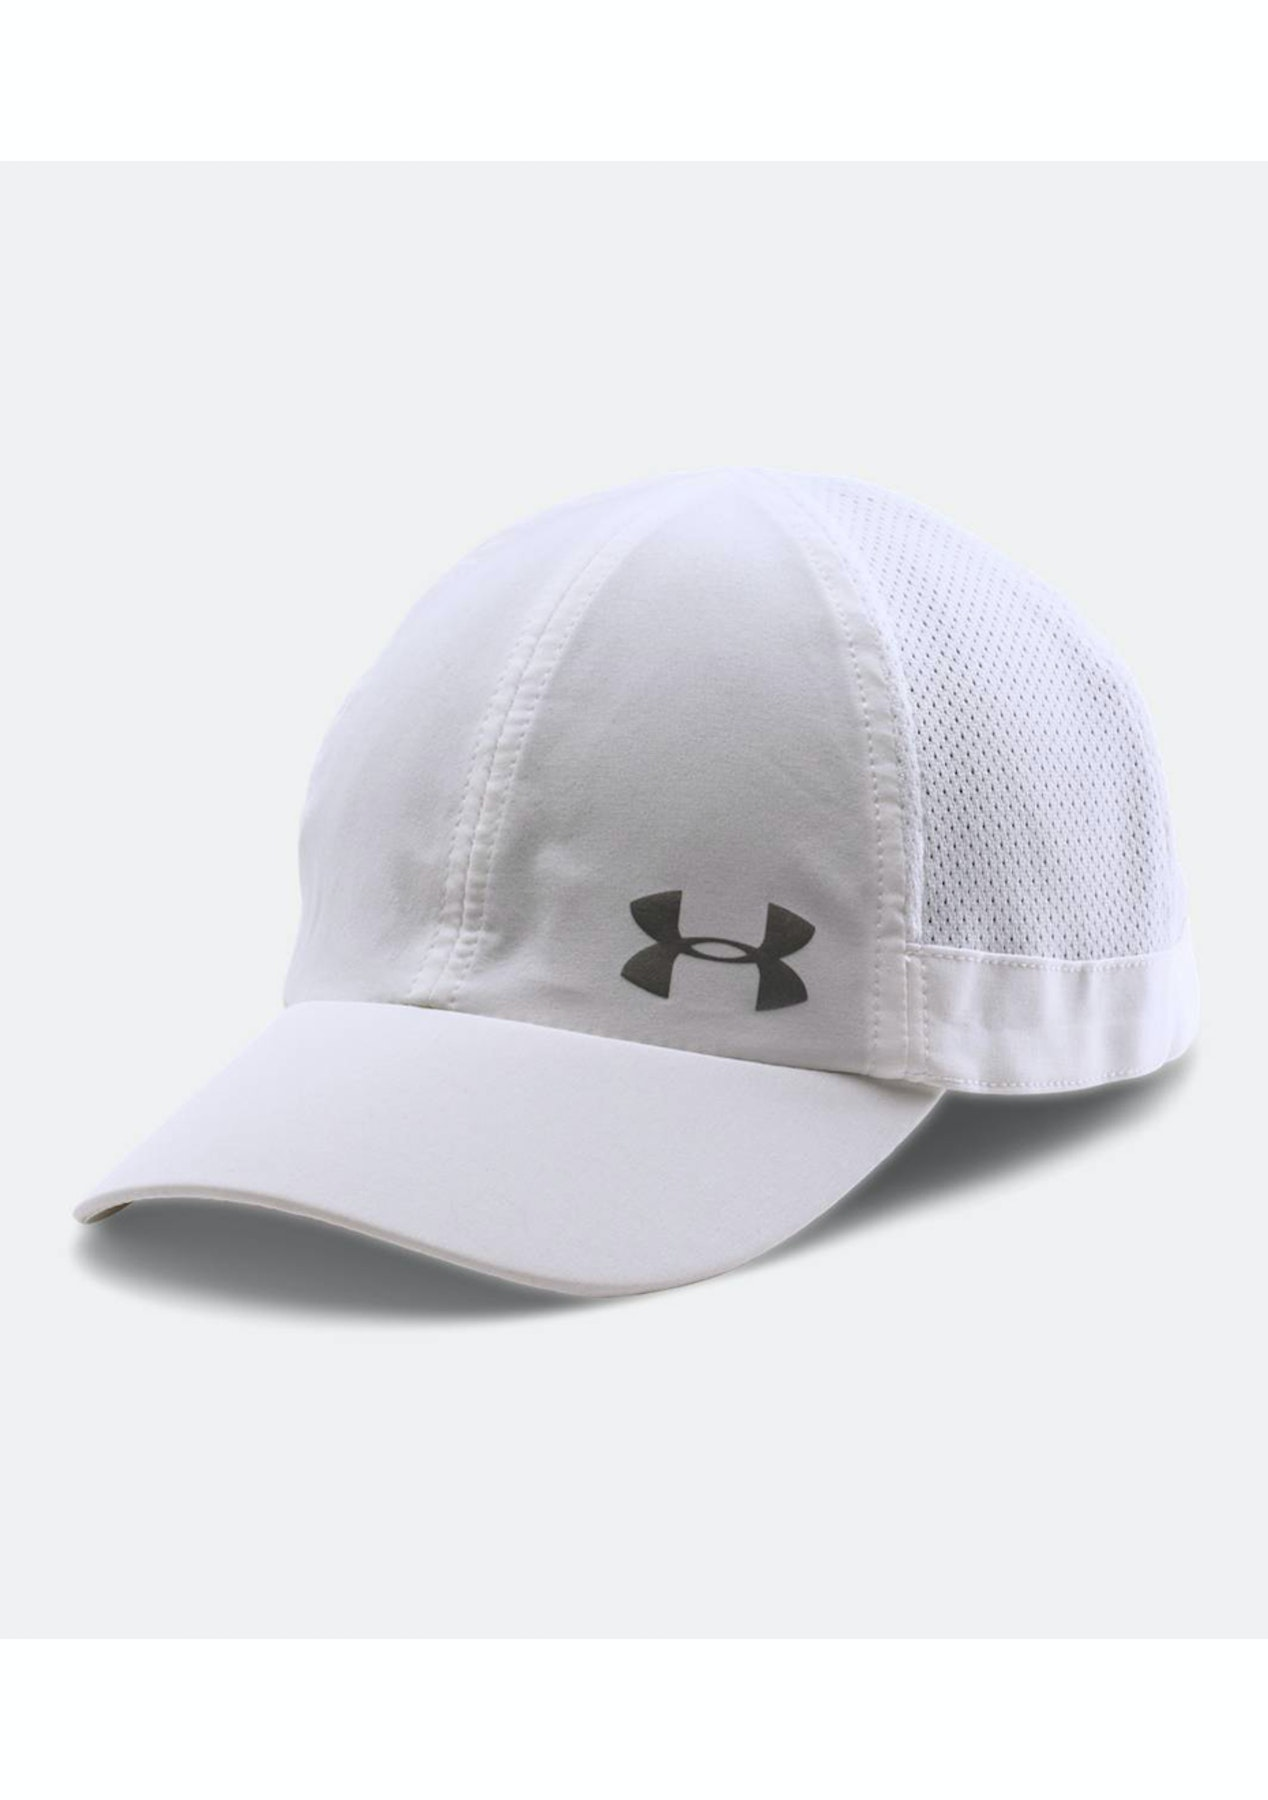 33cd1e9e621 Under Armour Womens Fly Fast Cap - White Grey Silver - Up to 65% off Under  Armour - Onceit